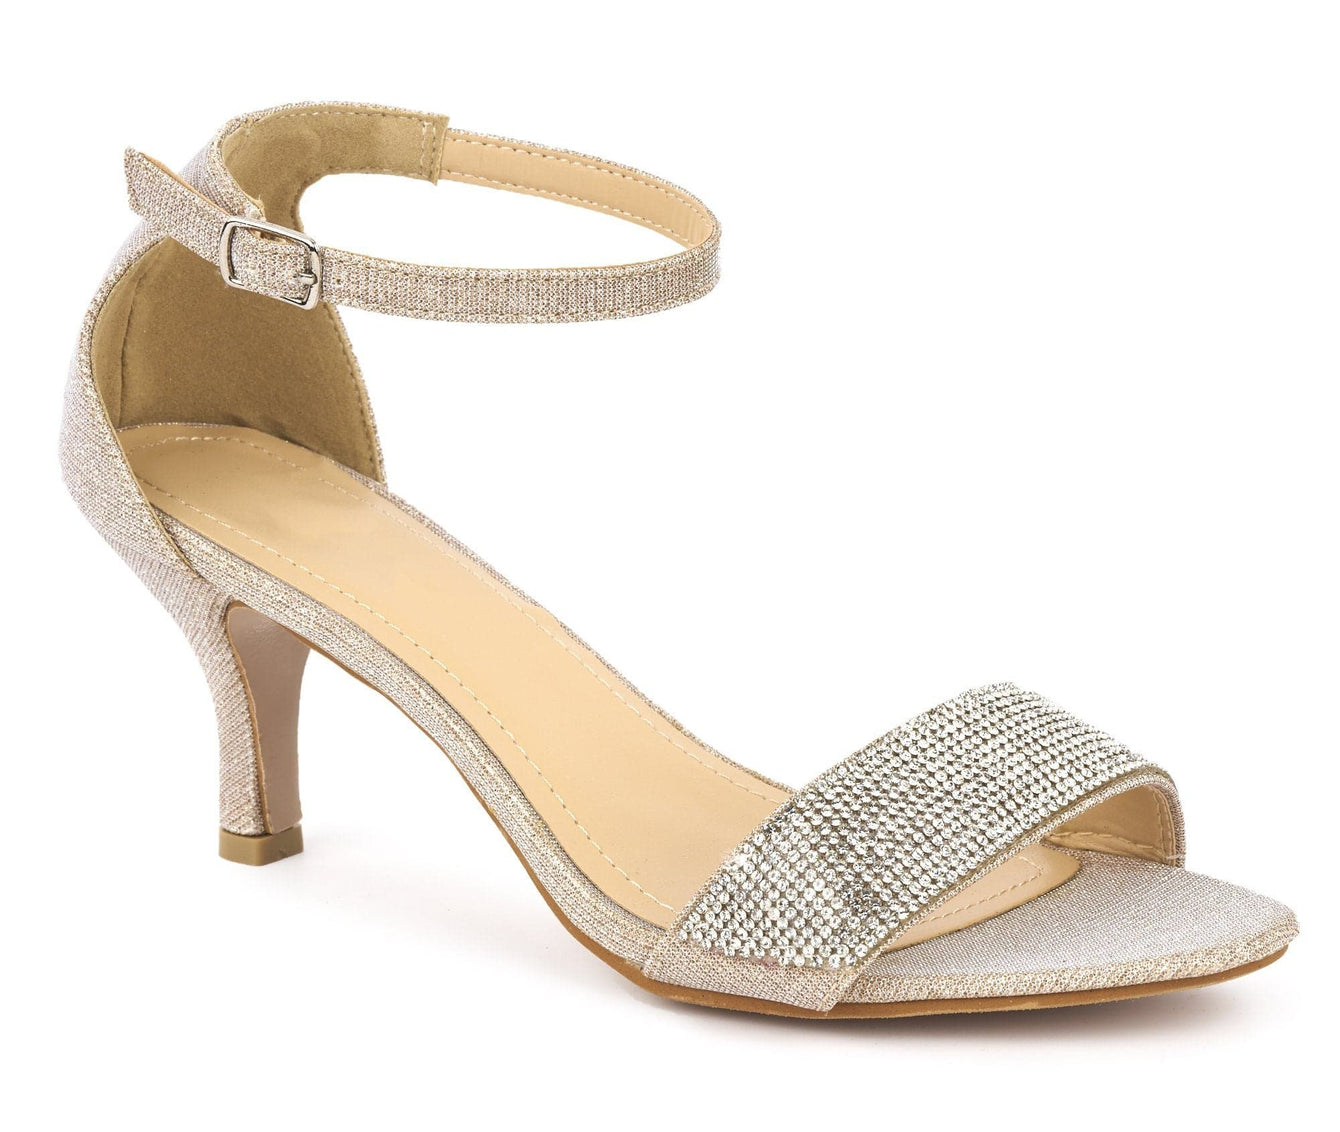 Medium Heel Ankle Strap Sandal in Beige